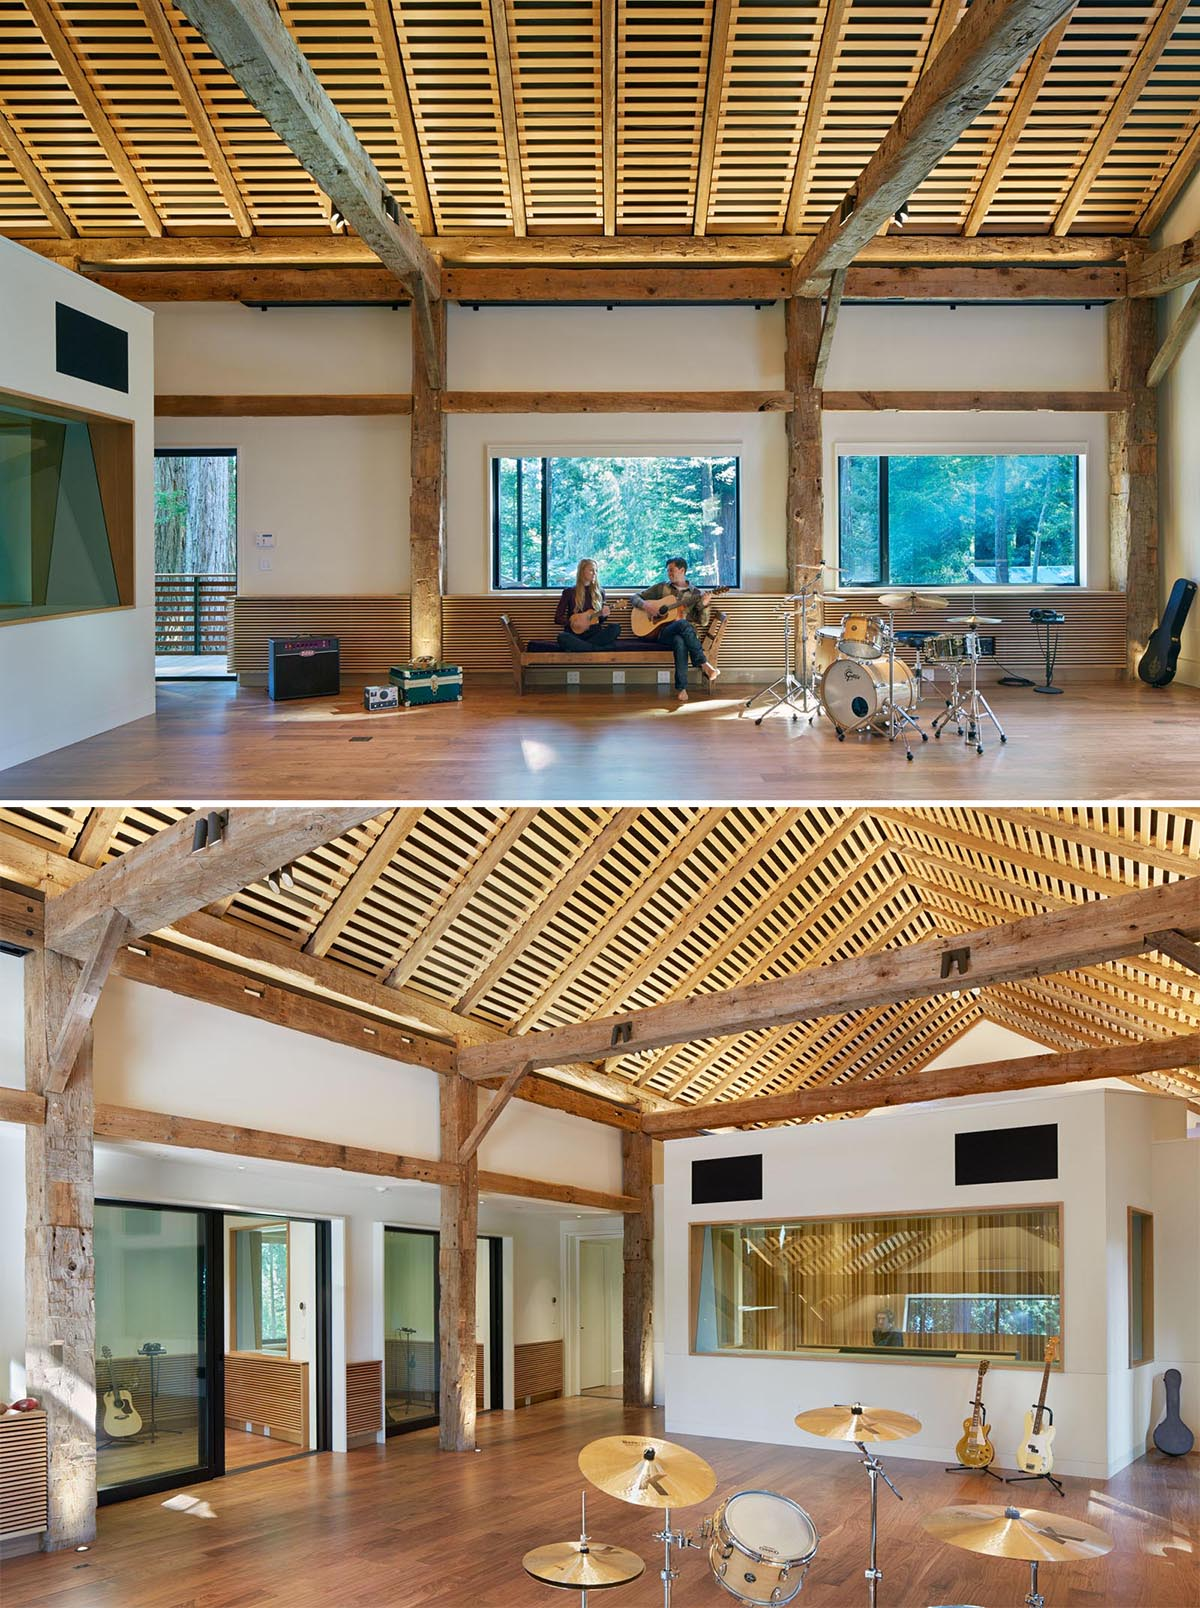 The interior of this modern recording studio includes a large open space with room for multiple instruments, as well as private recording rooms and a sound booth.